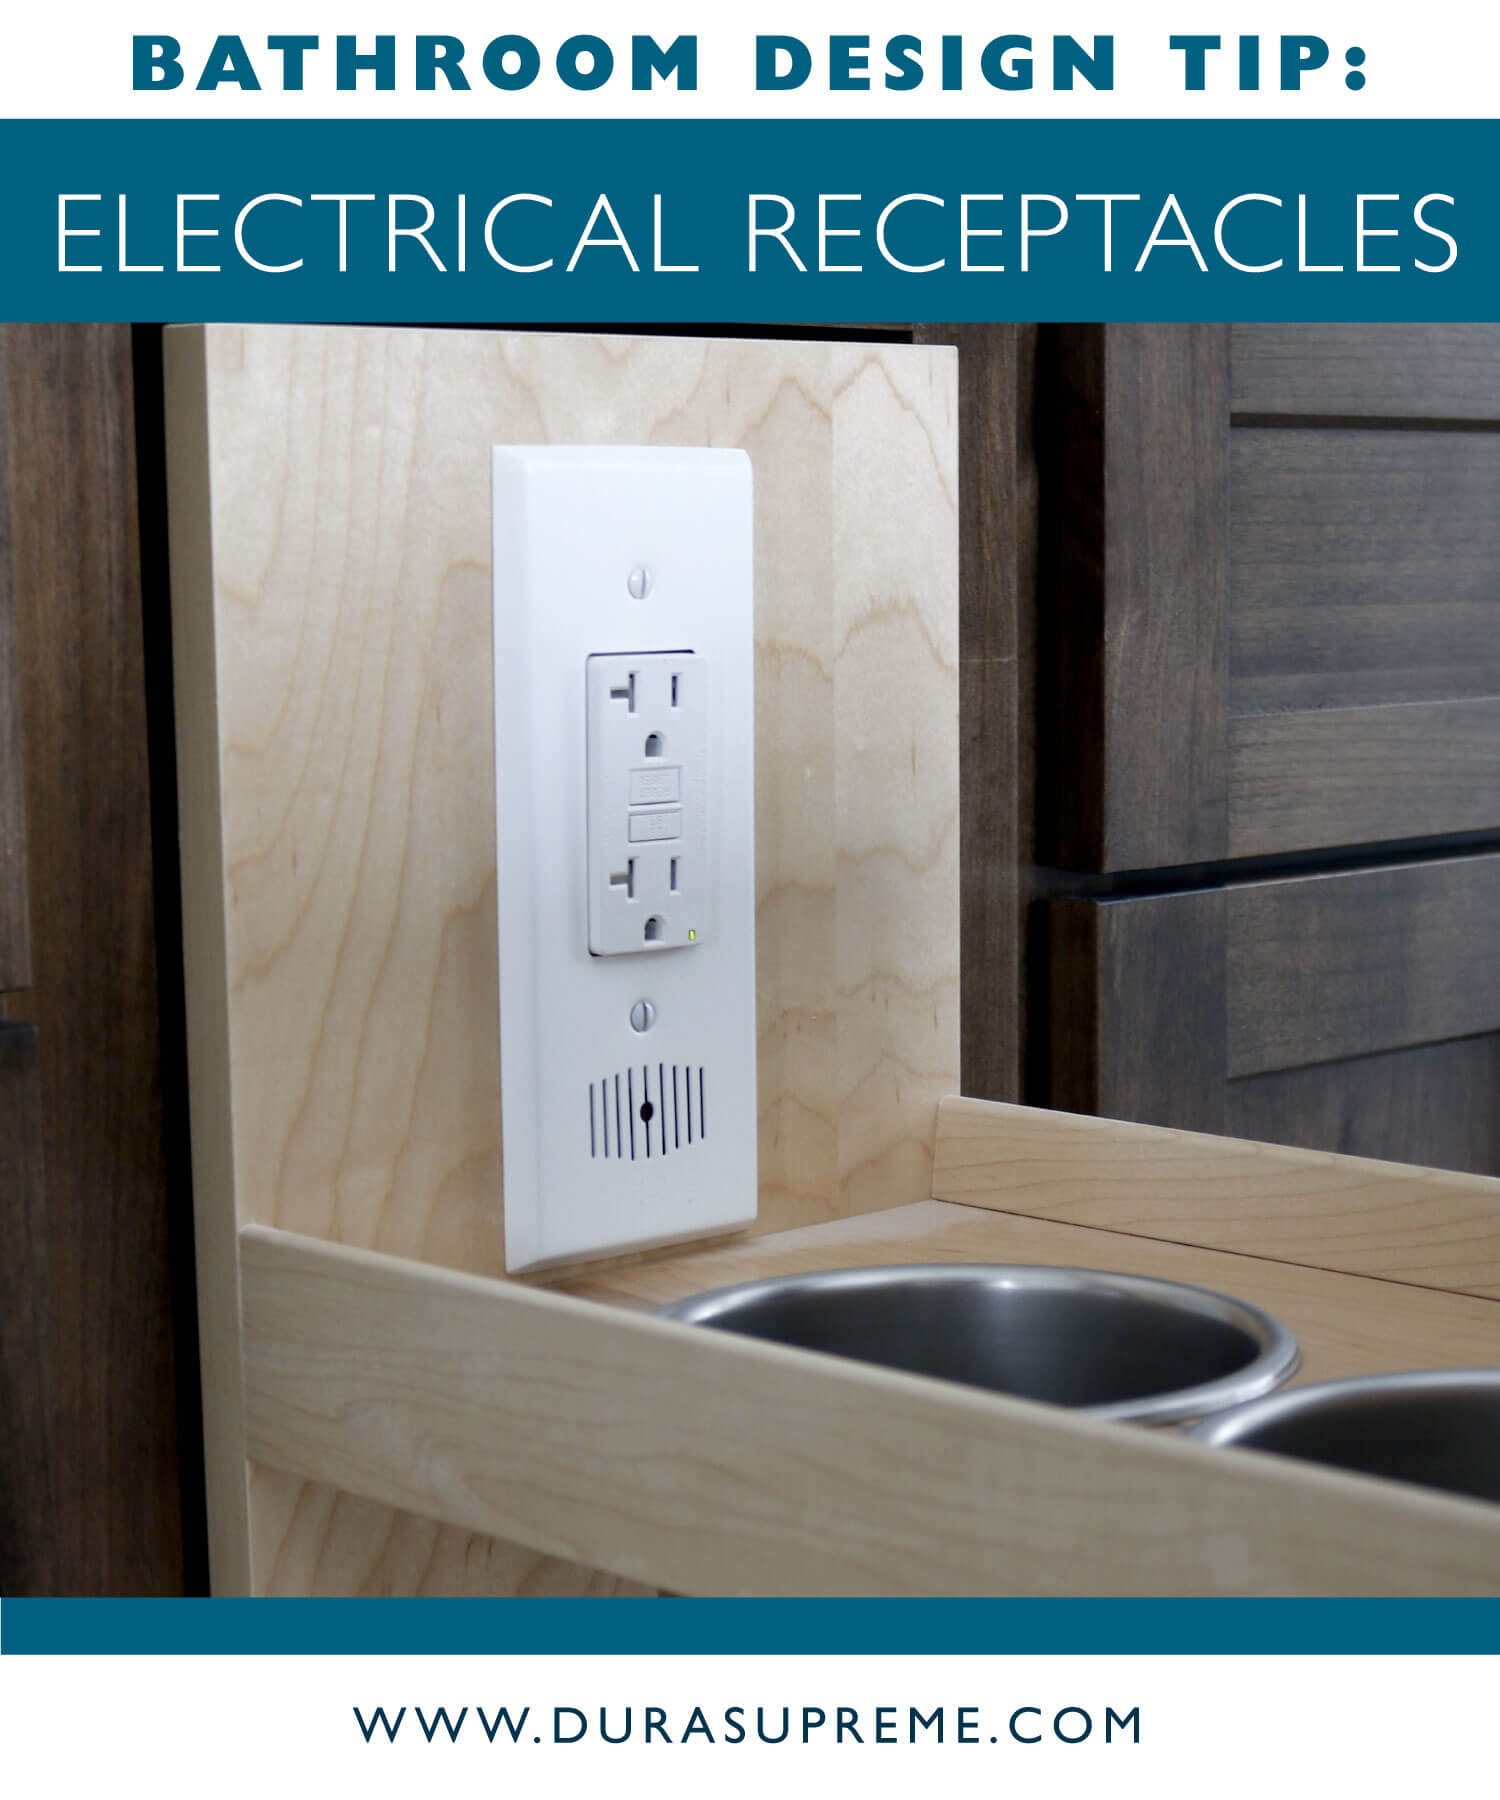 Bathroom Design Tips and Best Practices for Electrical Outlets. Guidelines fro Electrical Receptacles in the Bathroom.